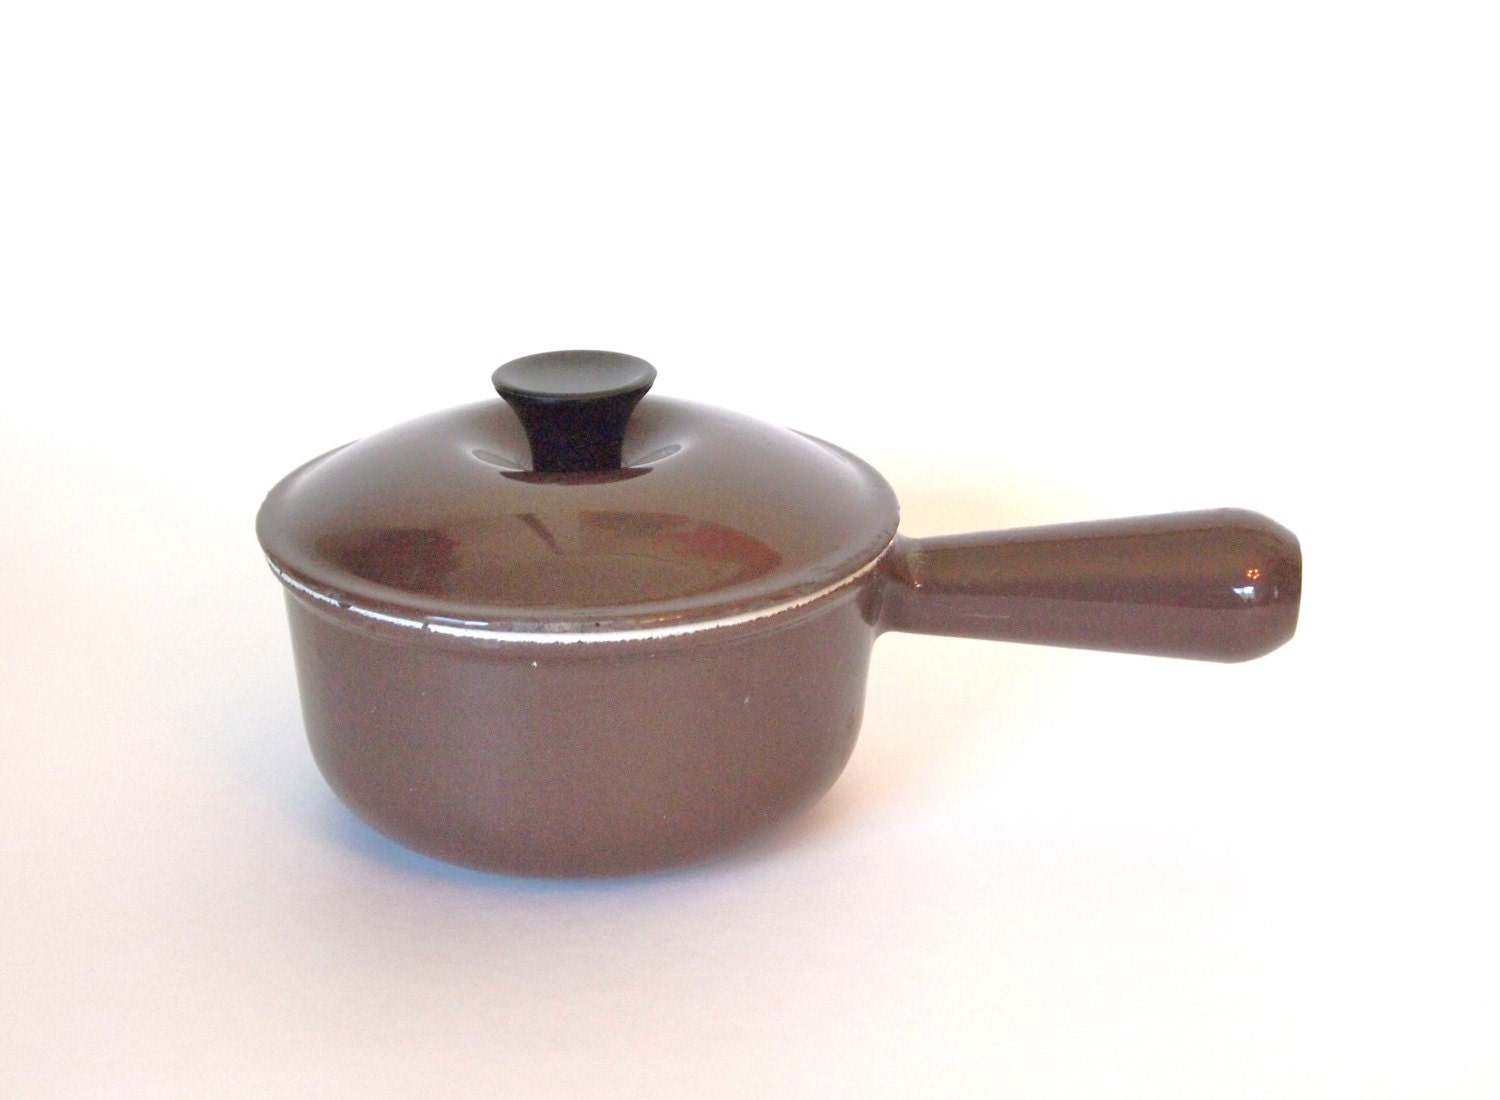 vintage saucepan pot le creuset brown number 14 small sauce. Black Bedroom Furniture Sets. Home Design Ideas